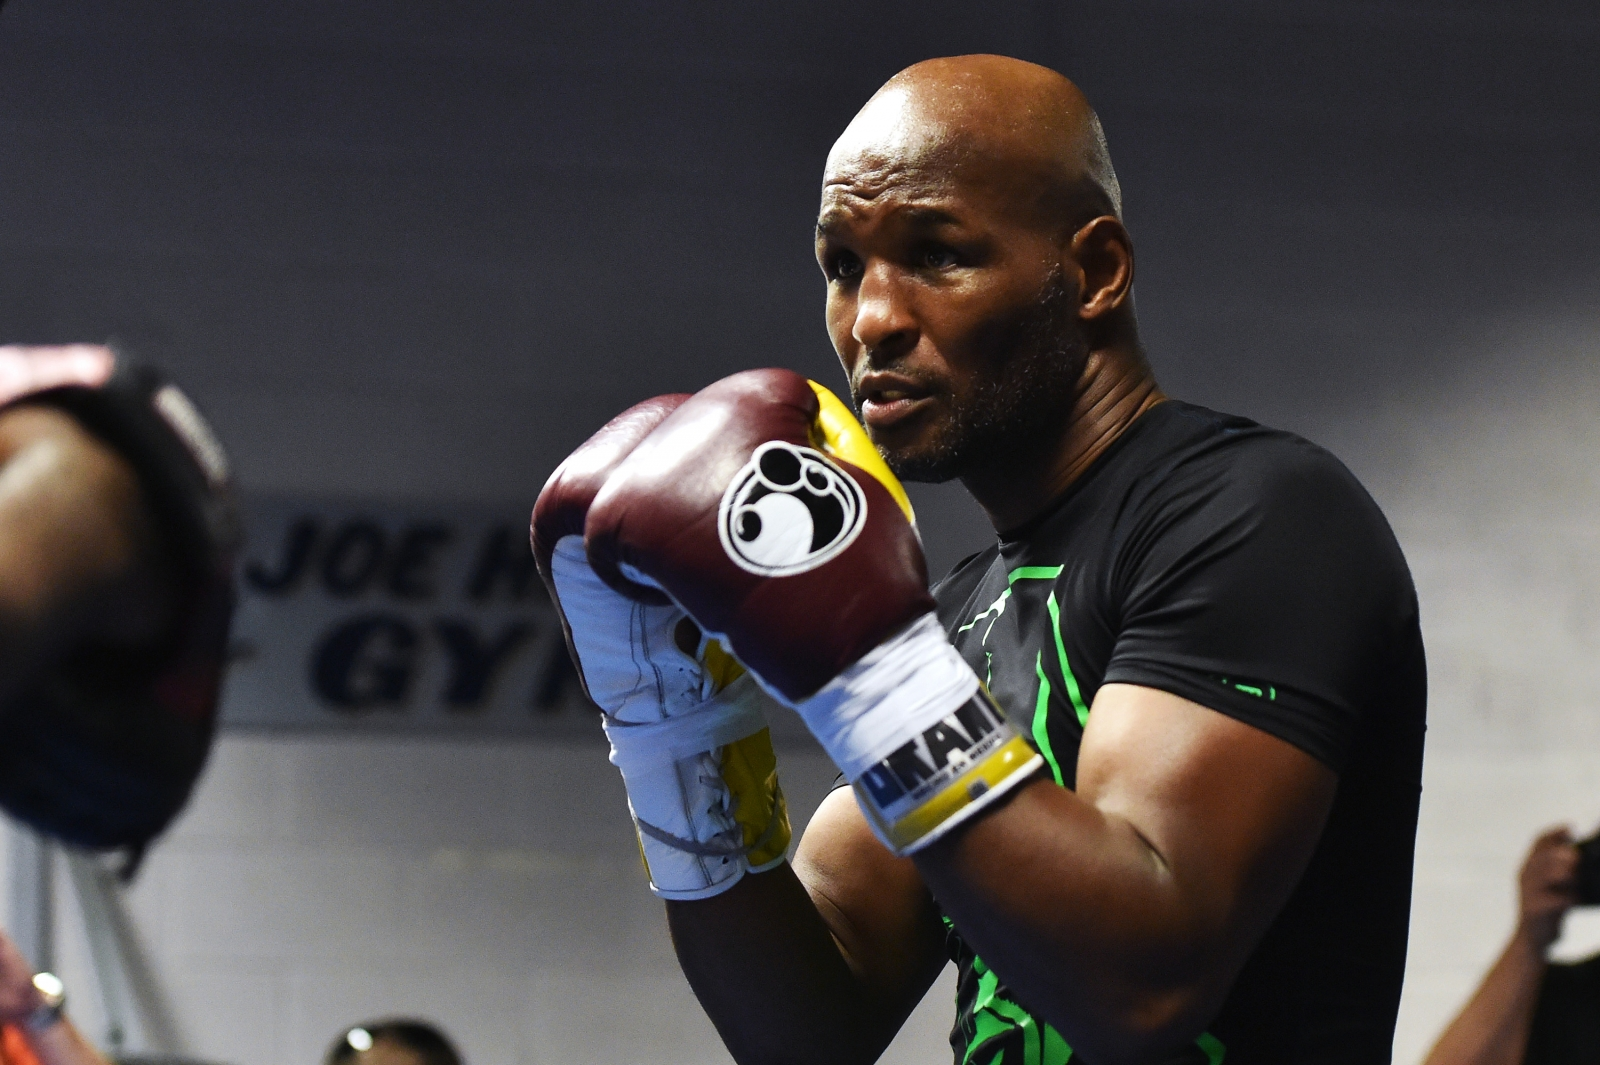 Hopkins-Smith set for Dec 17